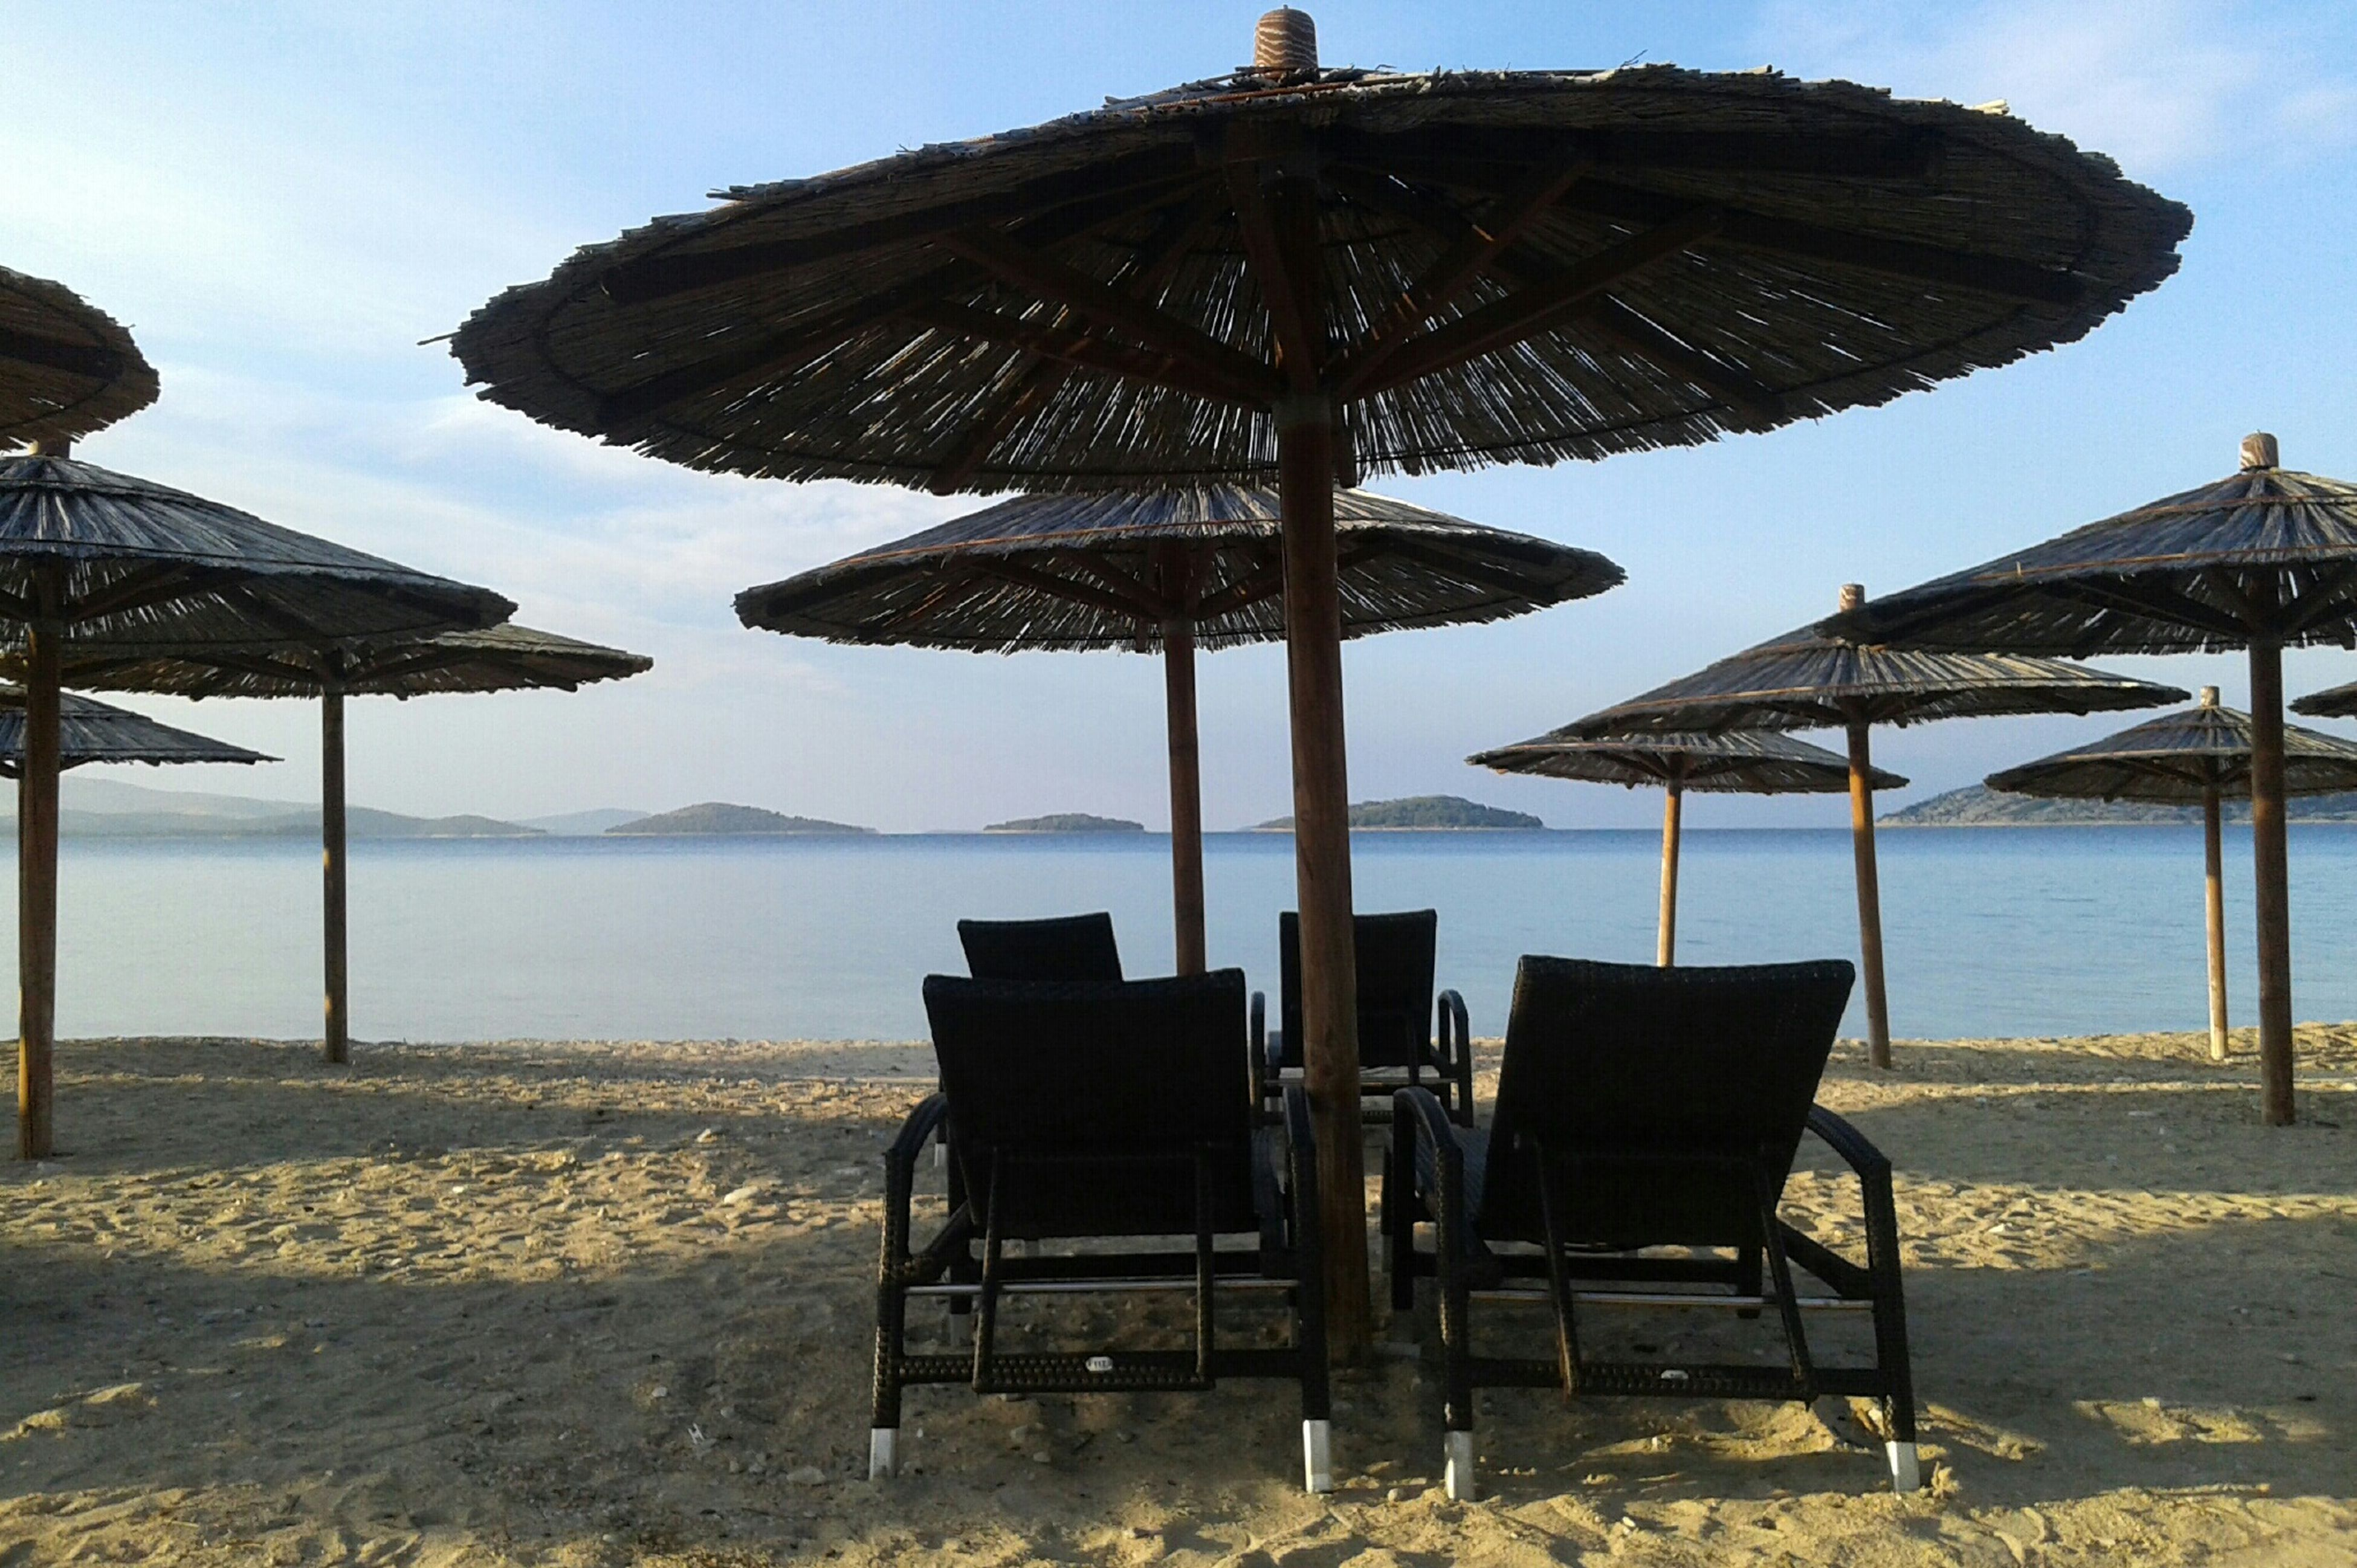 sea, beach, water, chair, tranquility, horizon over water, tranquil scene, bench, absence, sky, sand, empty, scenics, relaxation, shore, vacations, nature, thatched roof, beach umbrella, parasol